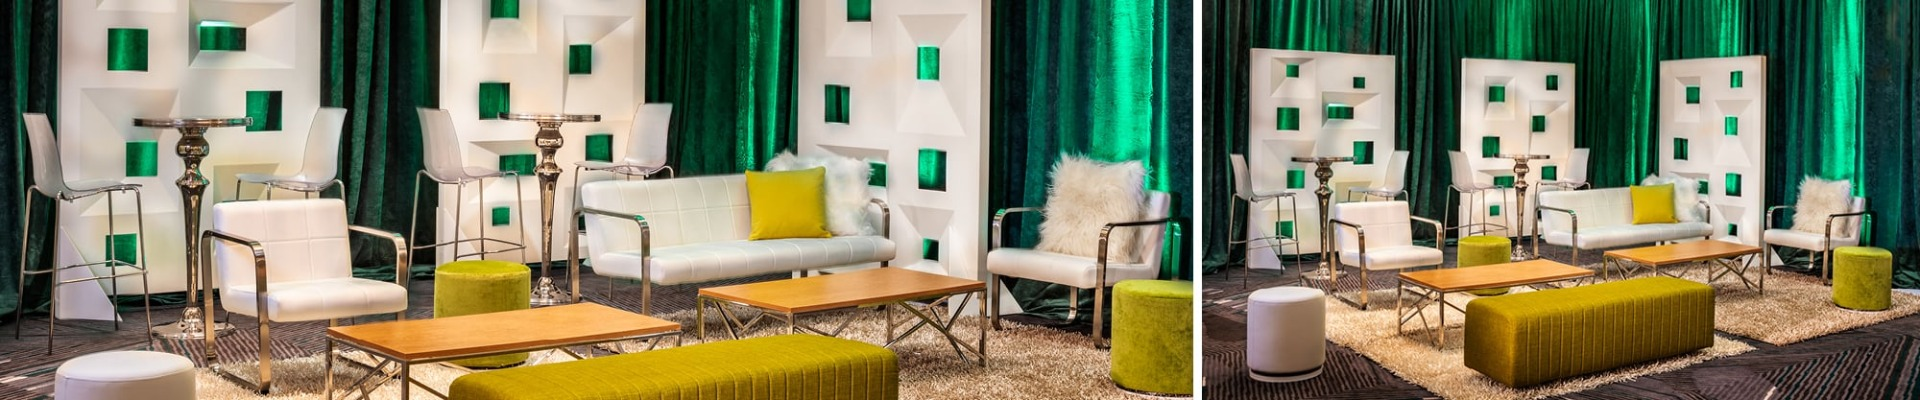 lounge with white furniture and green drape